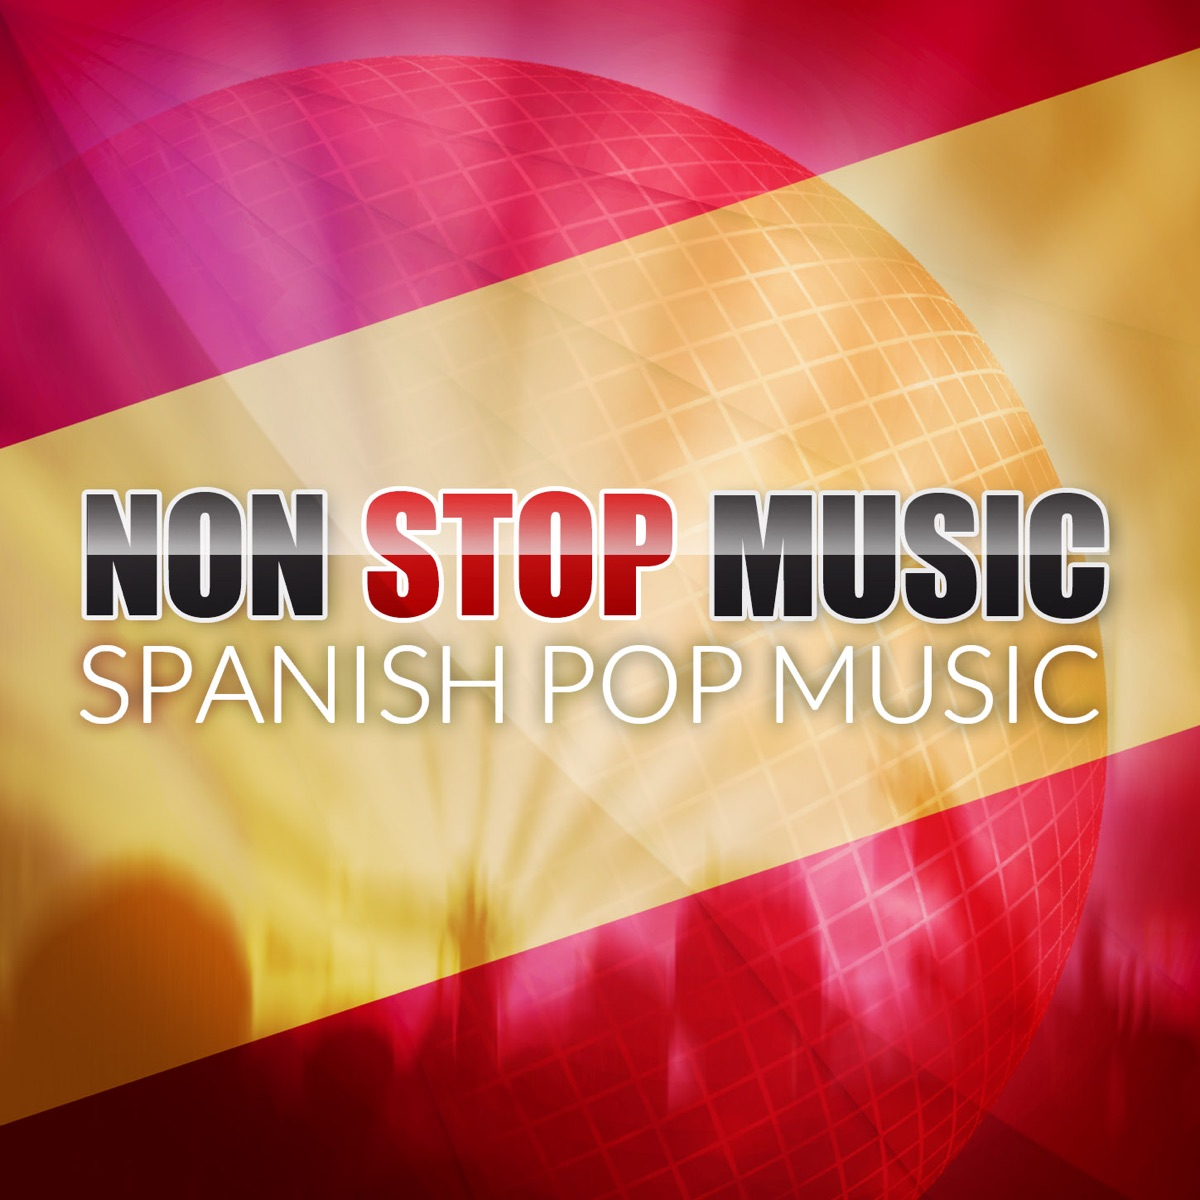 Non Stop Music Album Cover by The Sunshine Orchestra